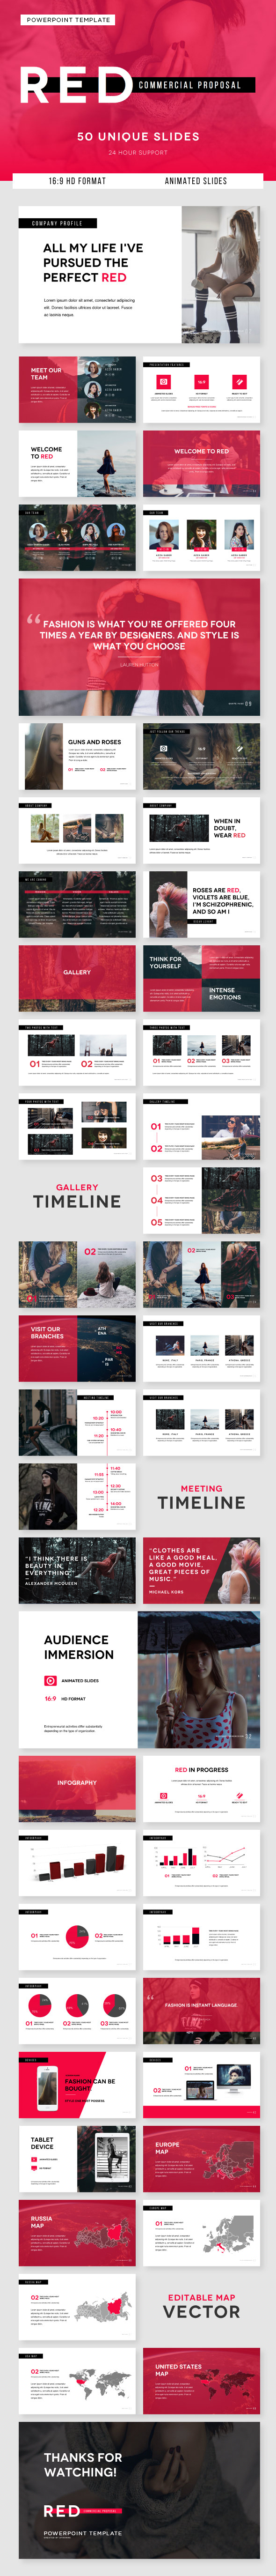 GraphicRiver RED Commercial Proposal PowerPoint Template 20555282